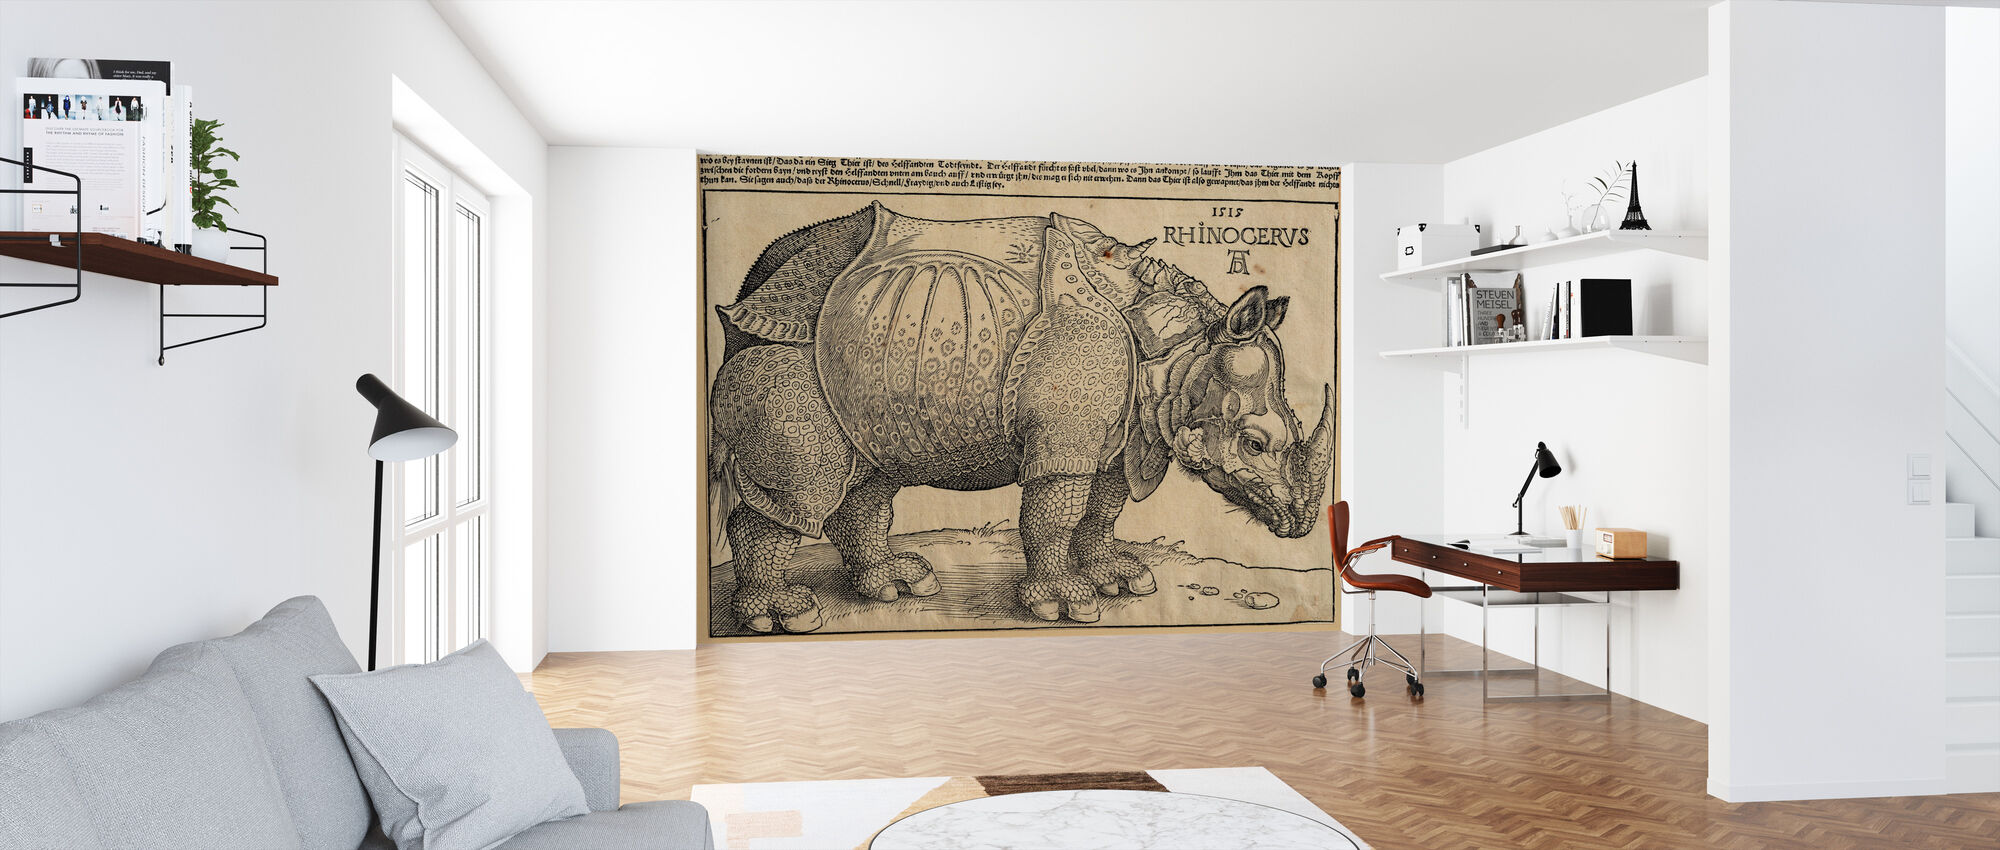 Rhinoceros - Abrecht Durer - Wallpaper - Office